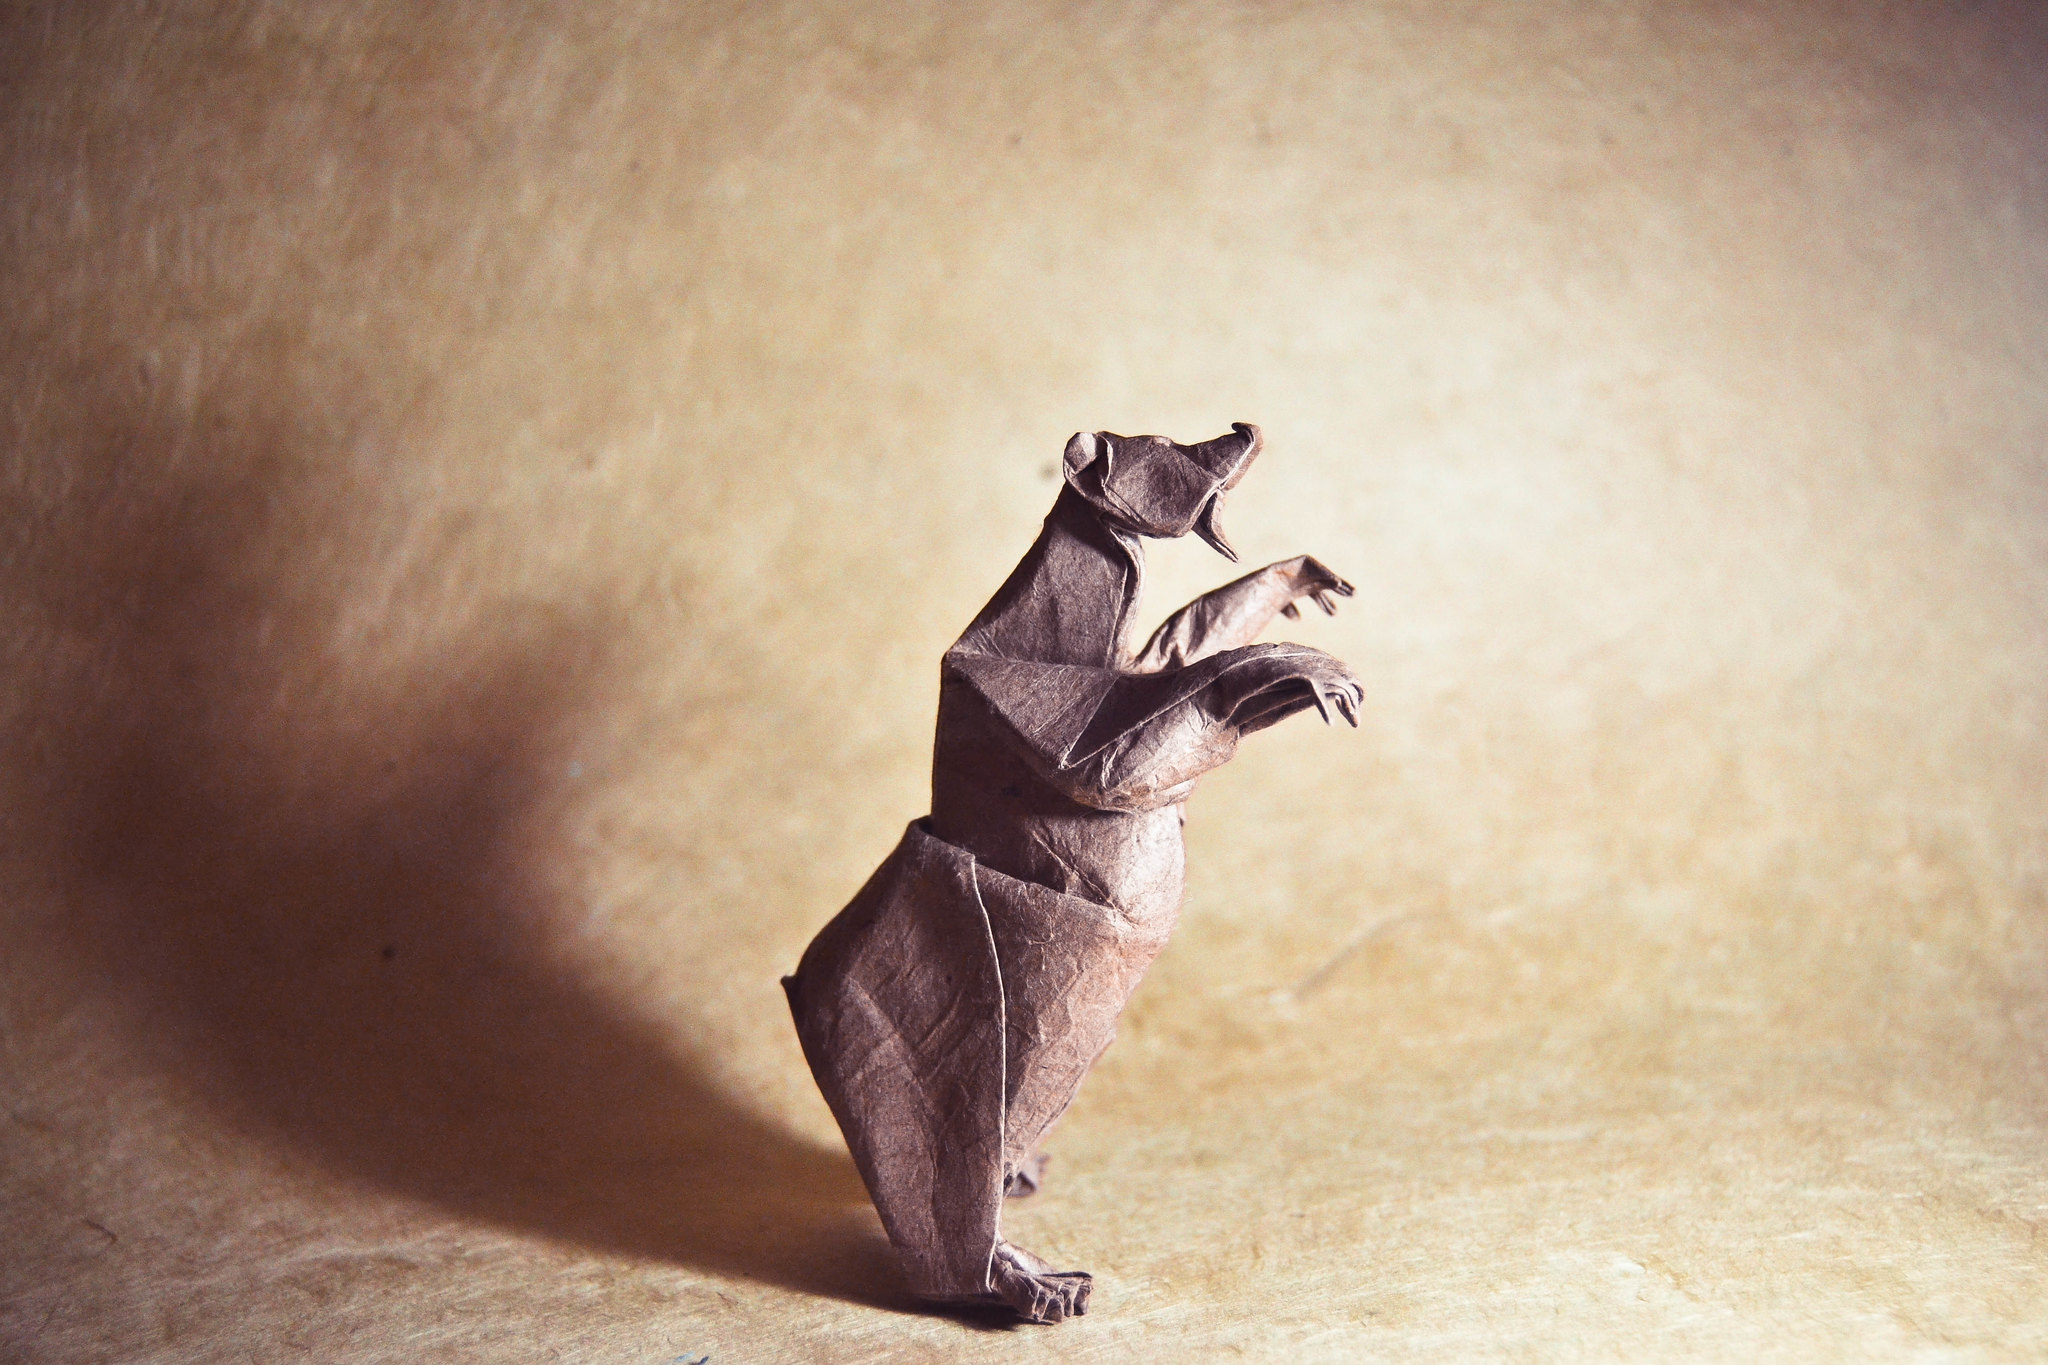 Origami Grizzly Bear . Quentin Trollip